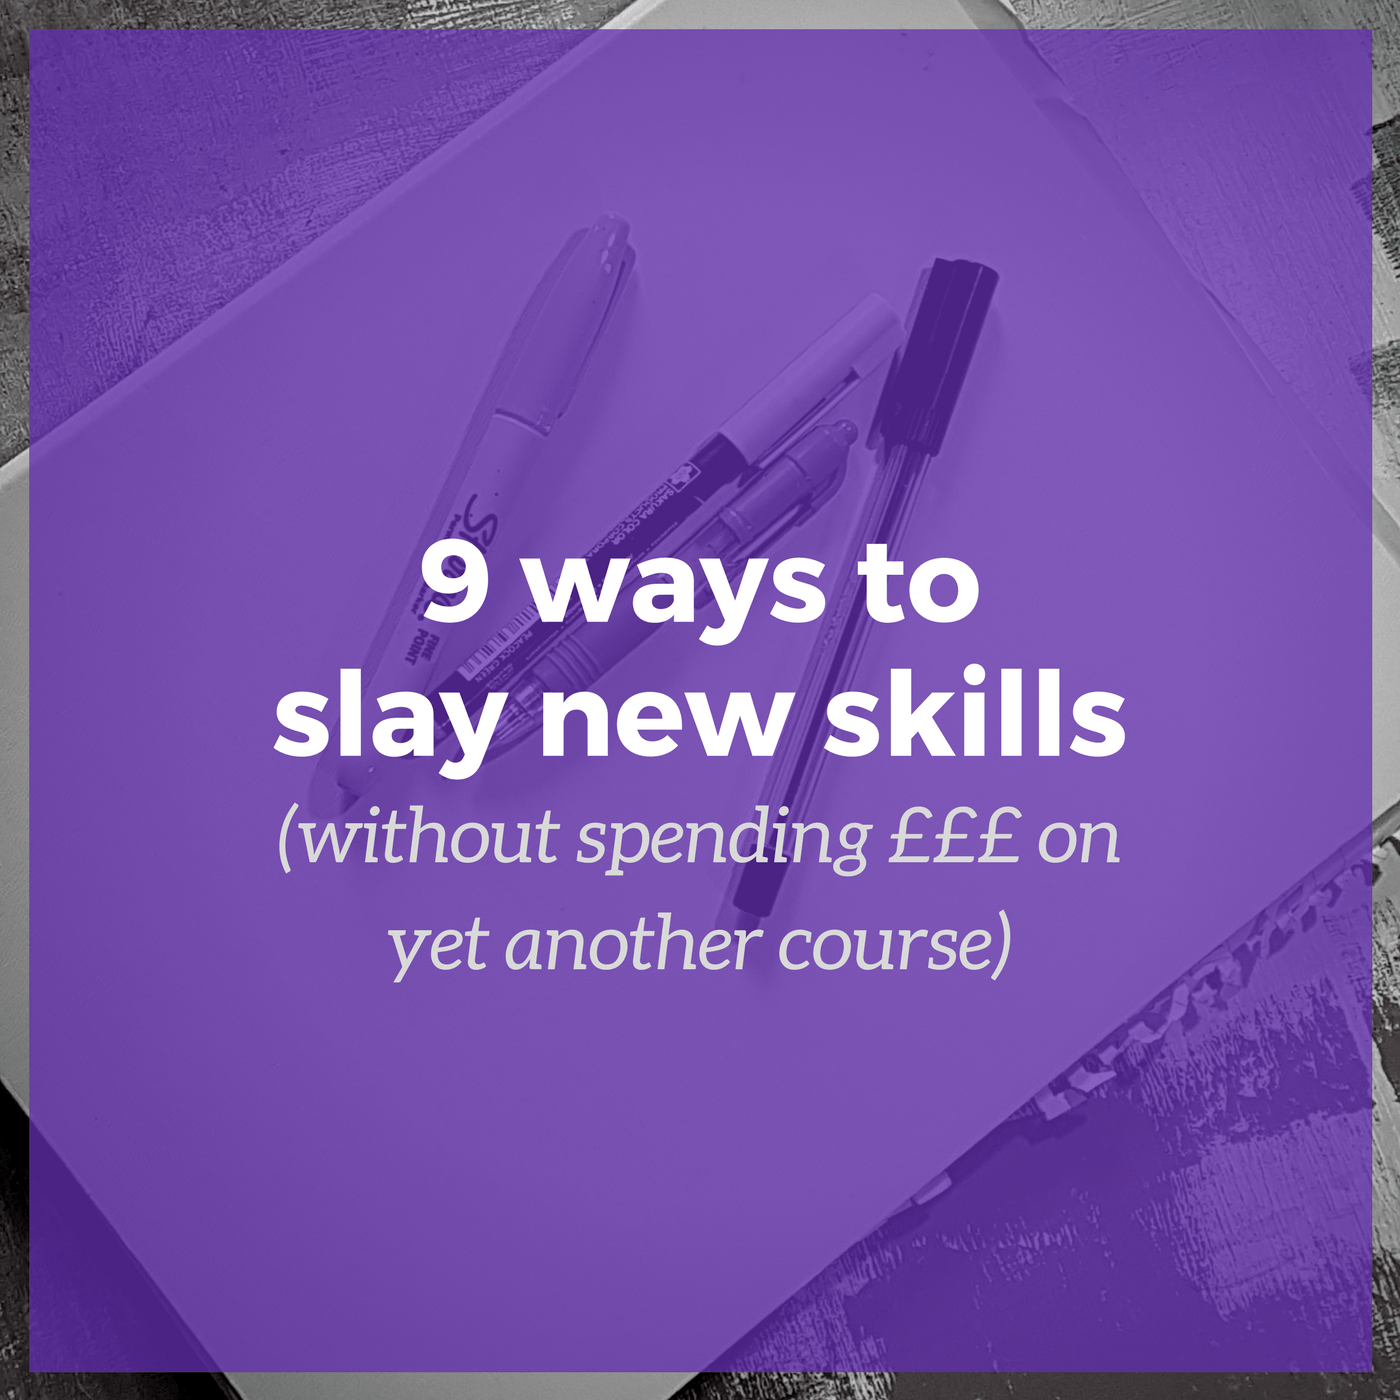 9 ways to slay new skills